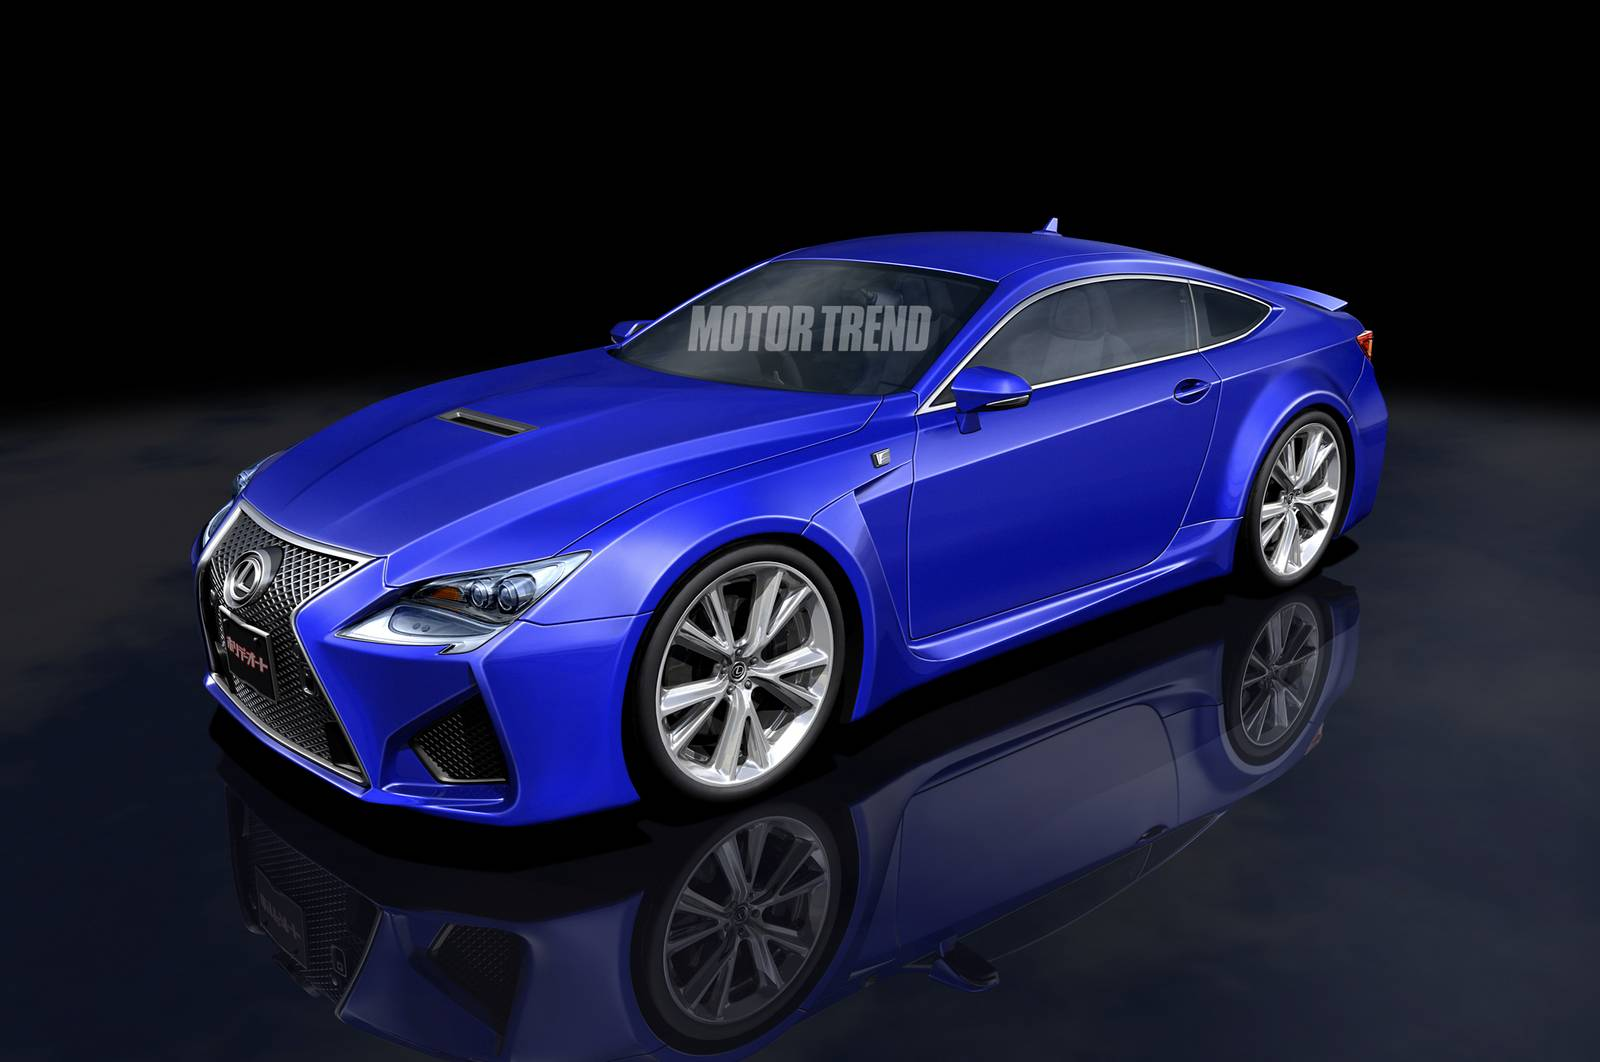 2015 Lexus Rc F To Cost Over 100k Feature Active Aero And Hit Over